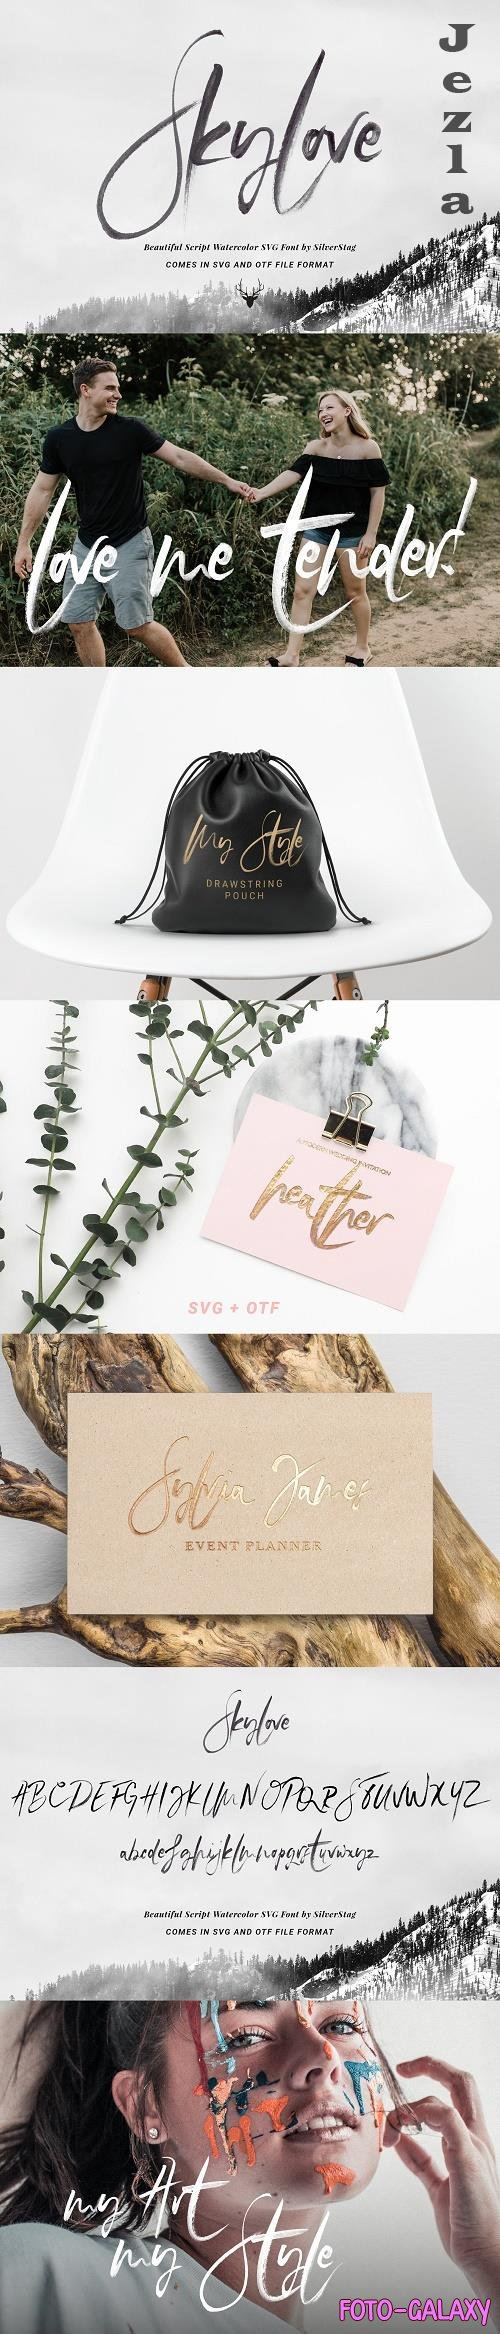 SkyLove SVG Watercolor Font - 2651083